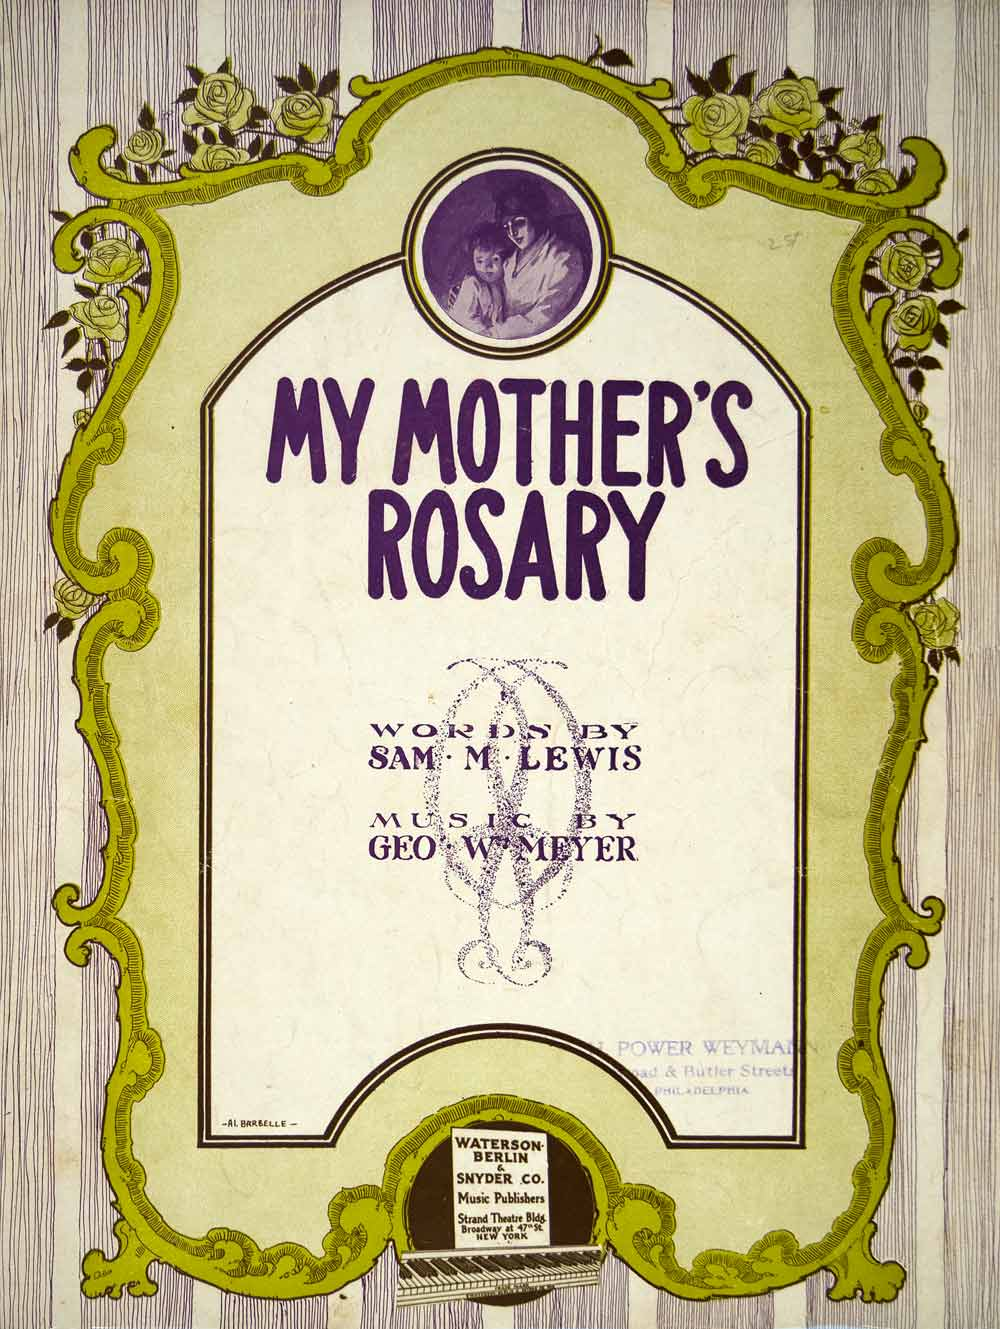 1915 Sheet Music My Mother's Rosary Albert W Barbelle Sam M. Lewis Geo. W ZSM2